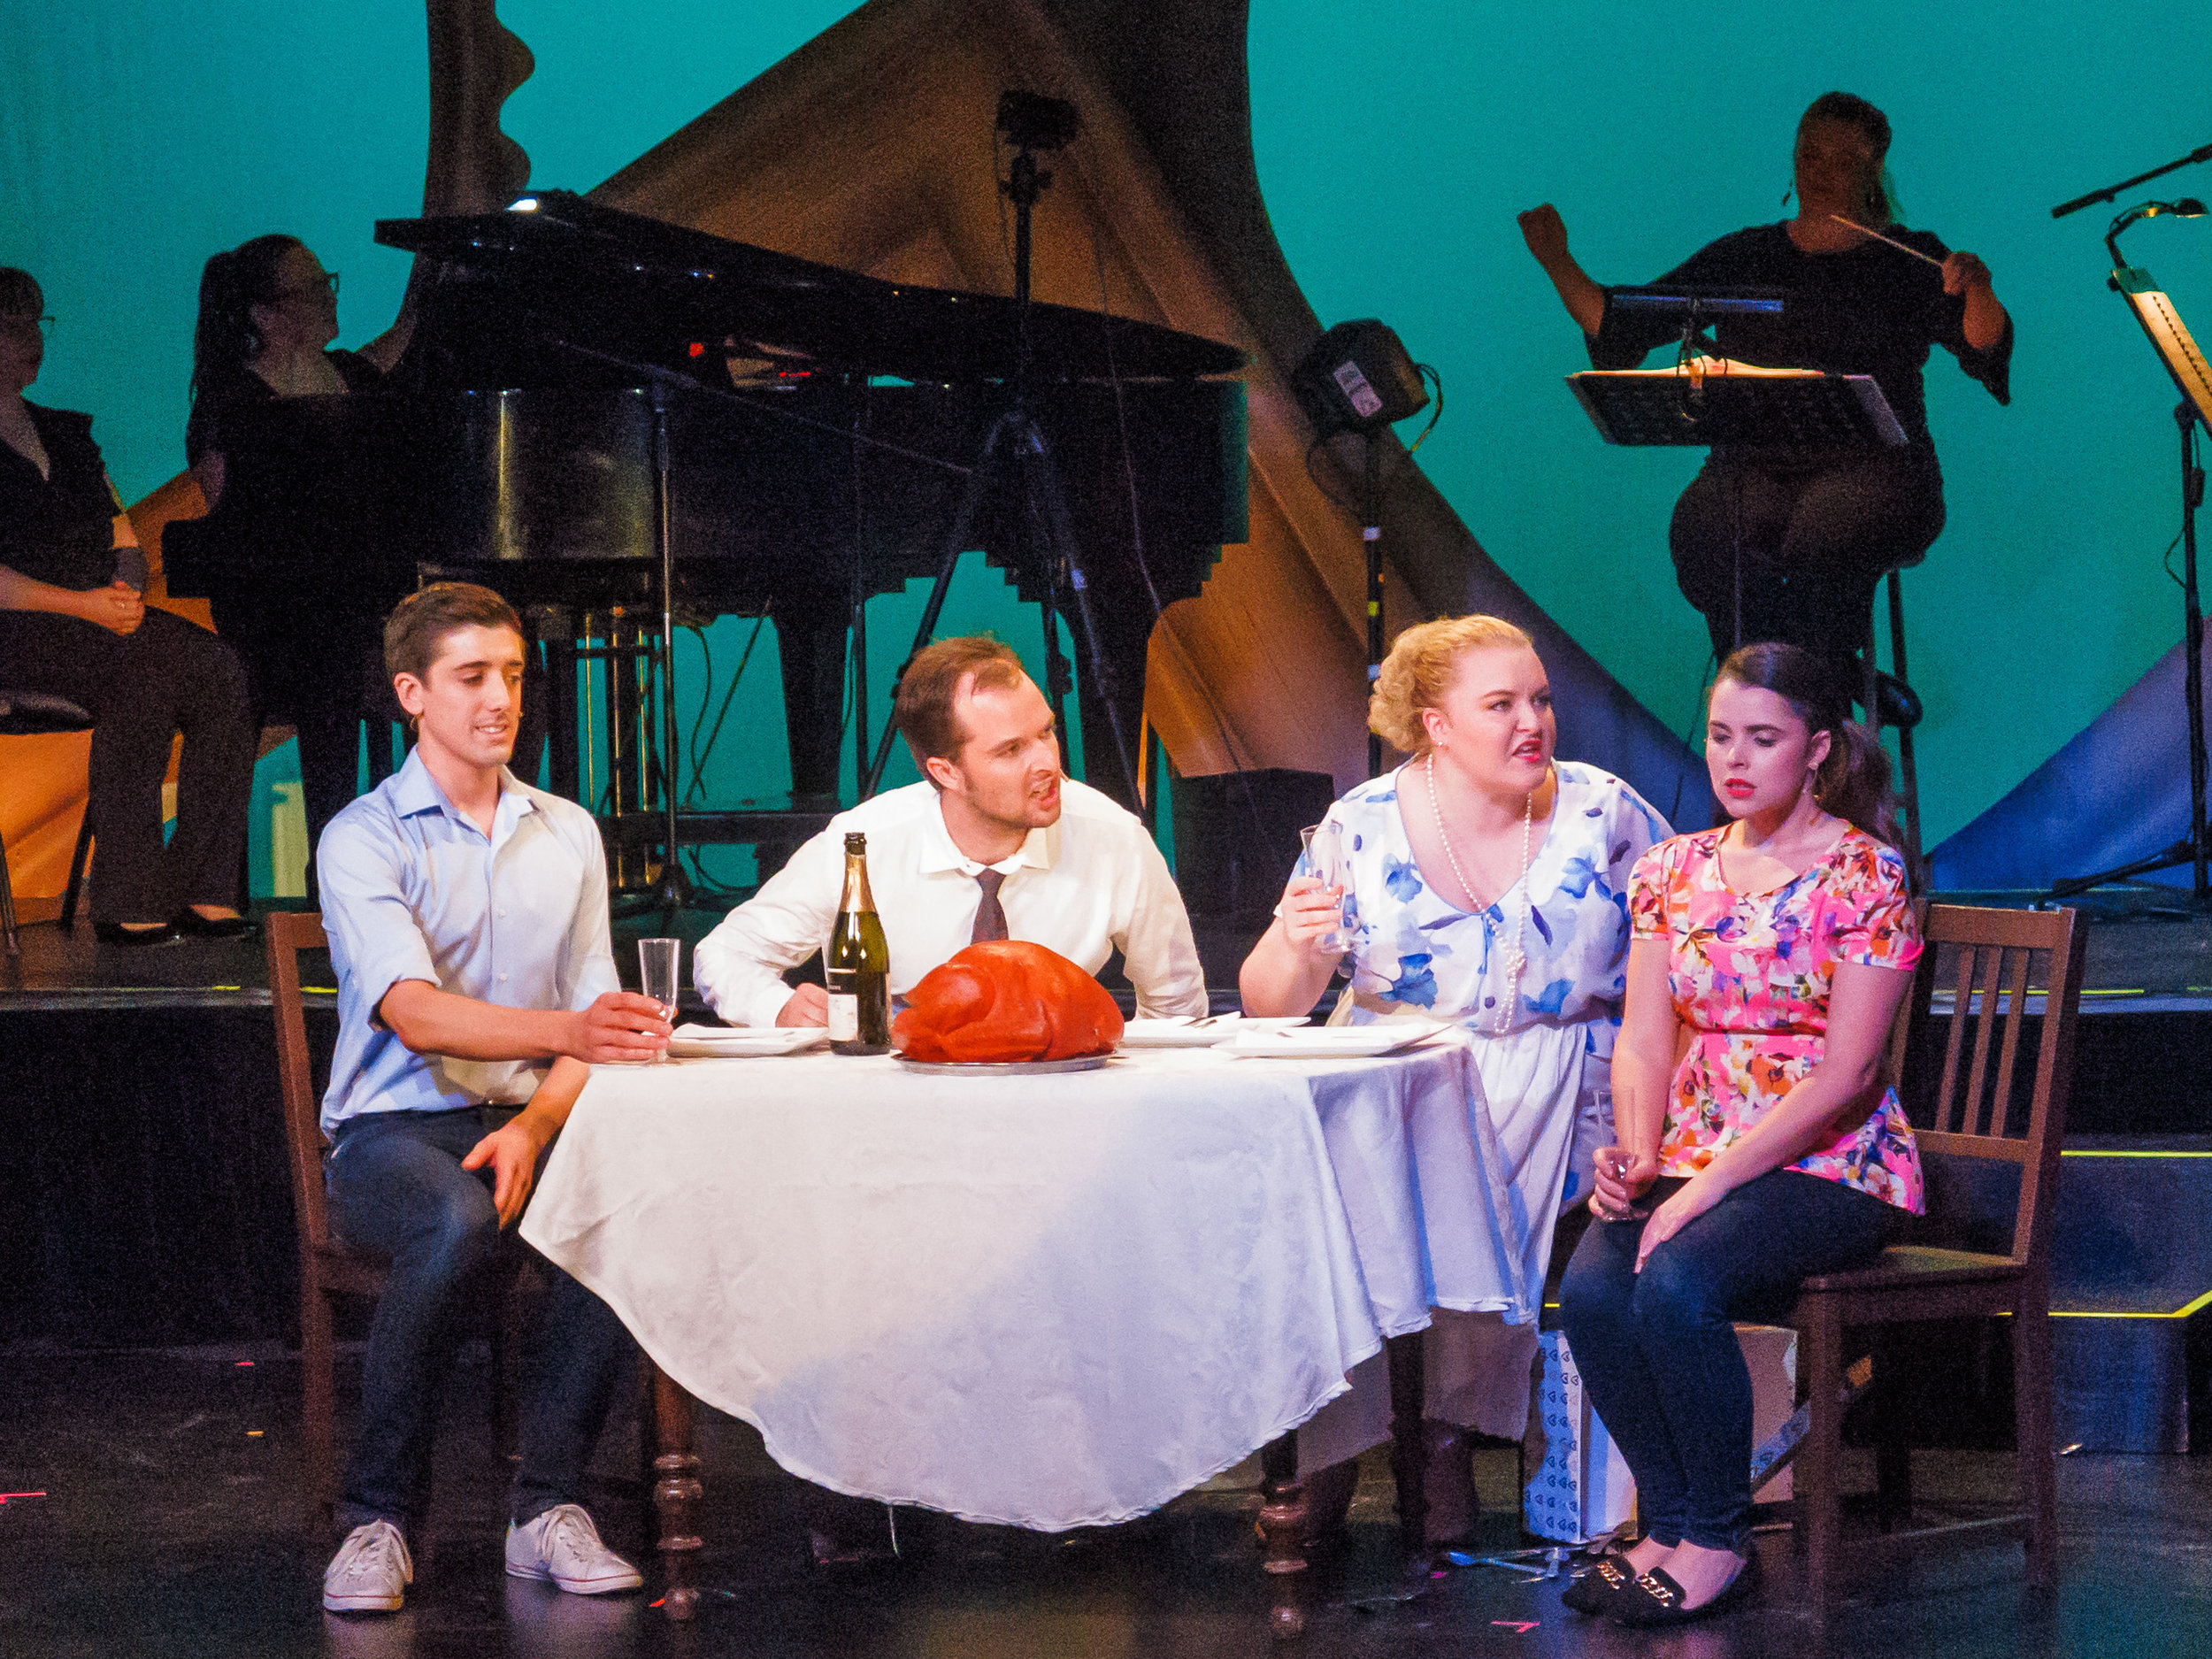 Picture:  Hey There Single Gal/Guy ( full cast Julie Eisentrager, Mufaro Maringe, Nadia Vanek, Kate Doohan, Nick Ferguson, Jenna Saini, Jack Treby, and Joshua Thia). Picture credit: Geoff lawrence, Creative Futures Photography